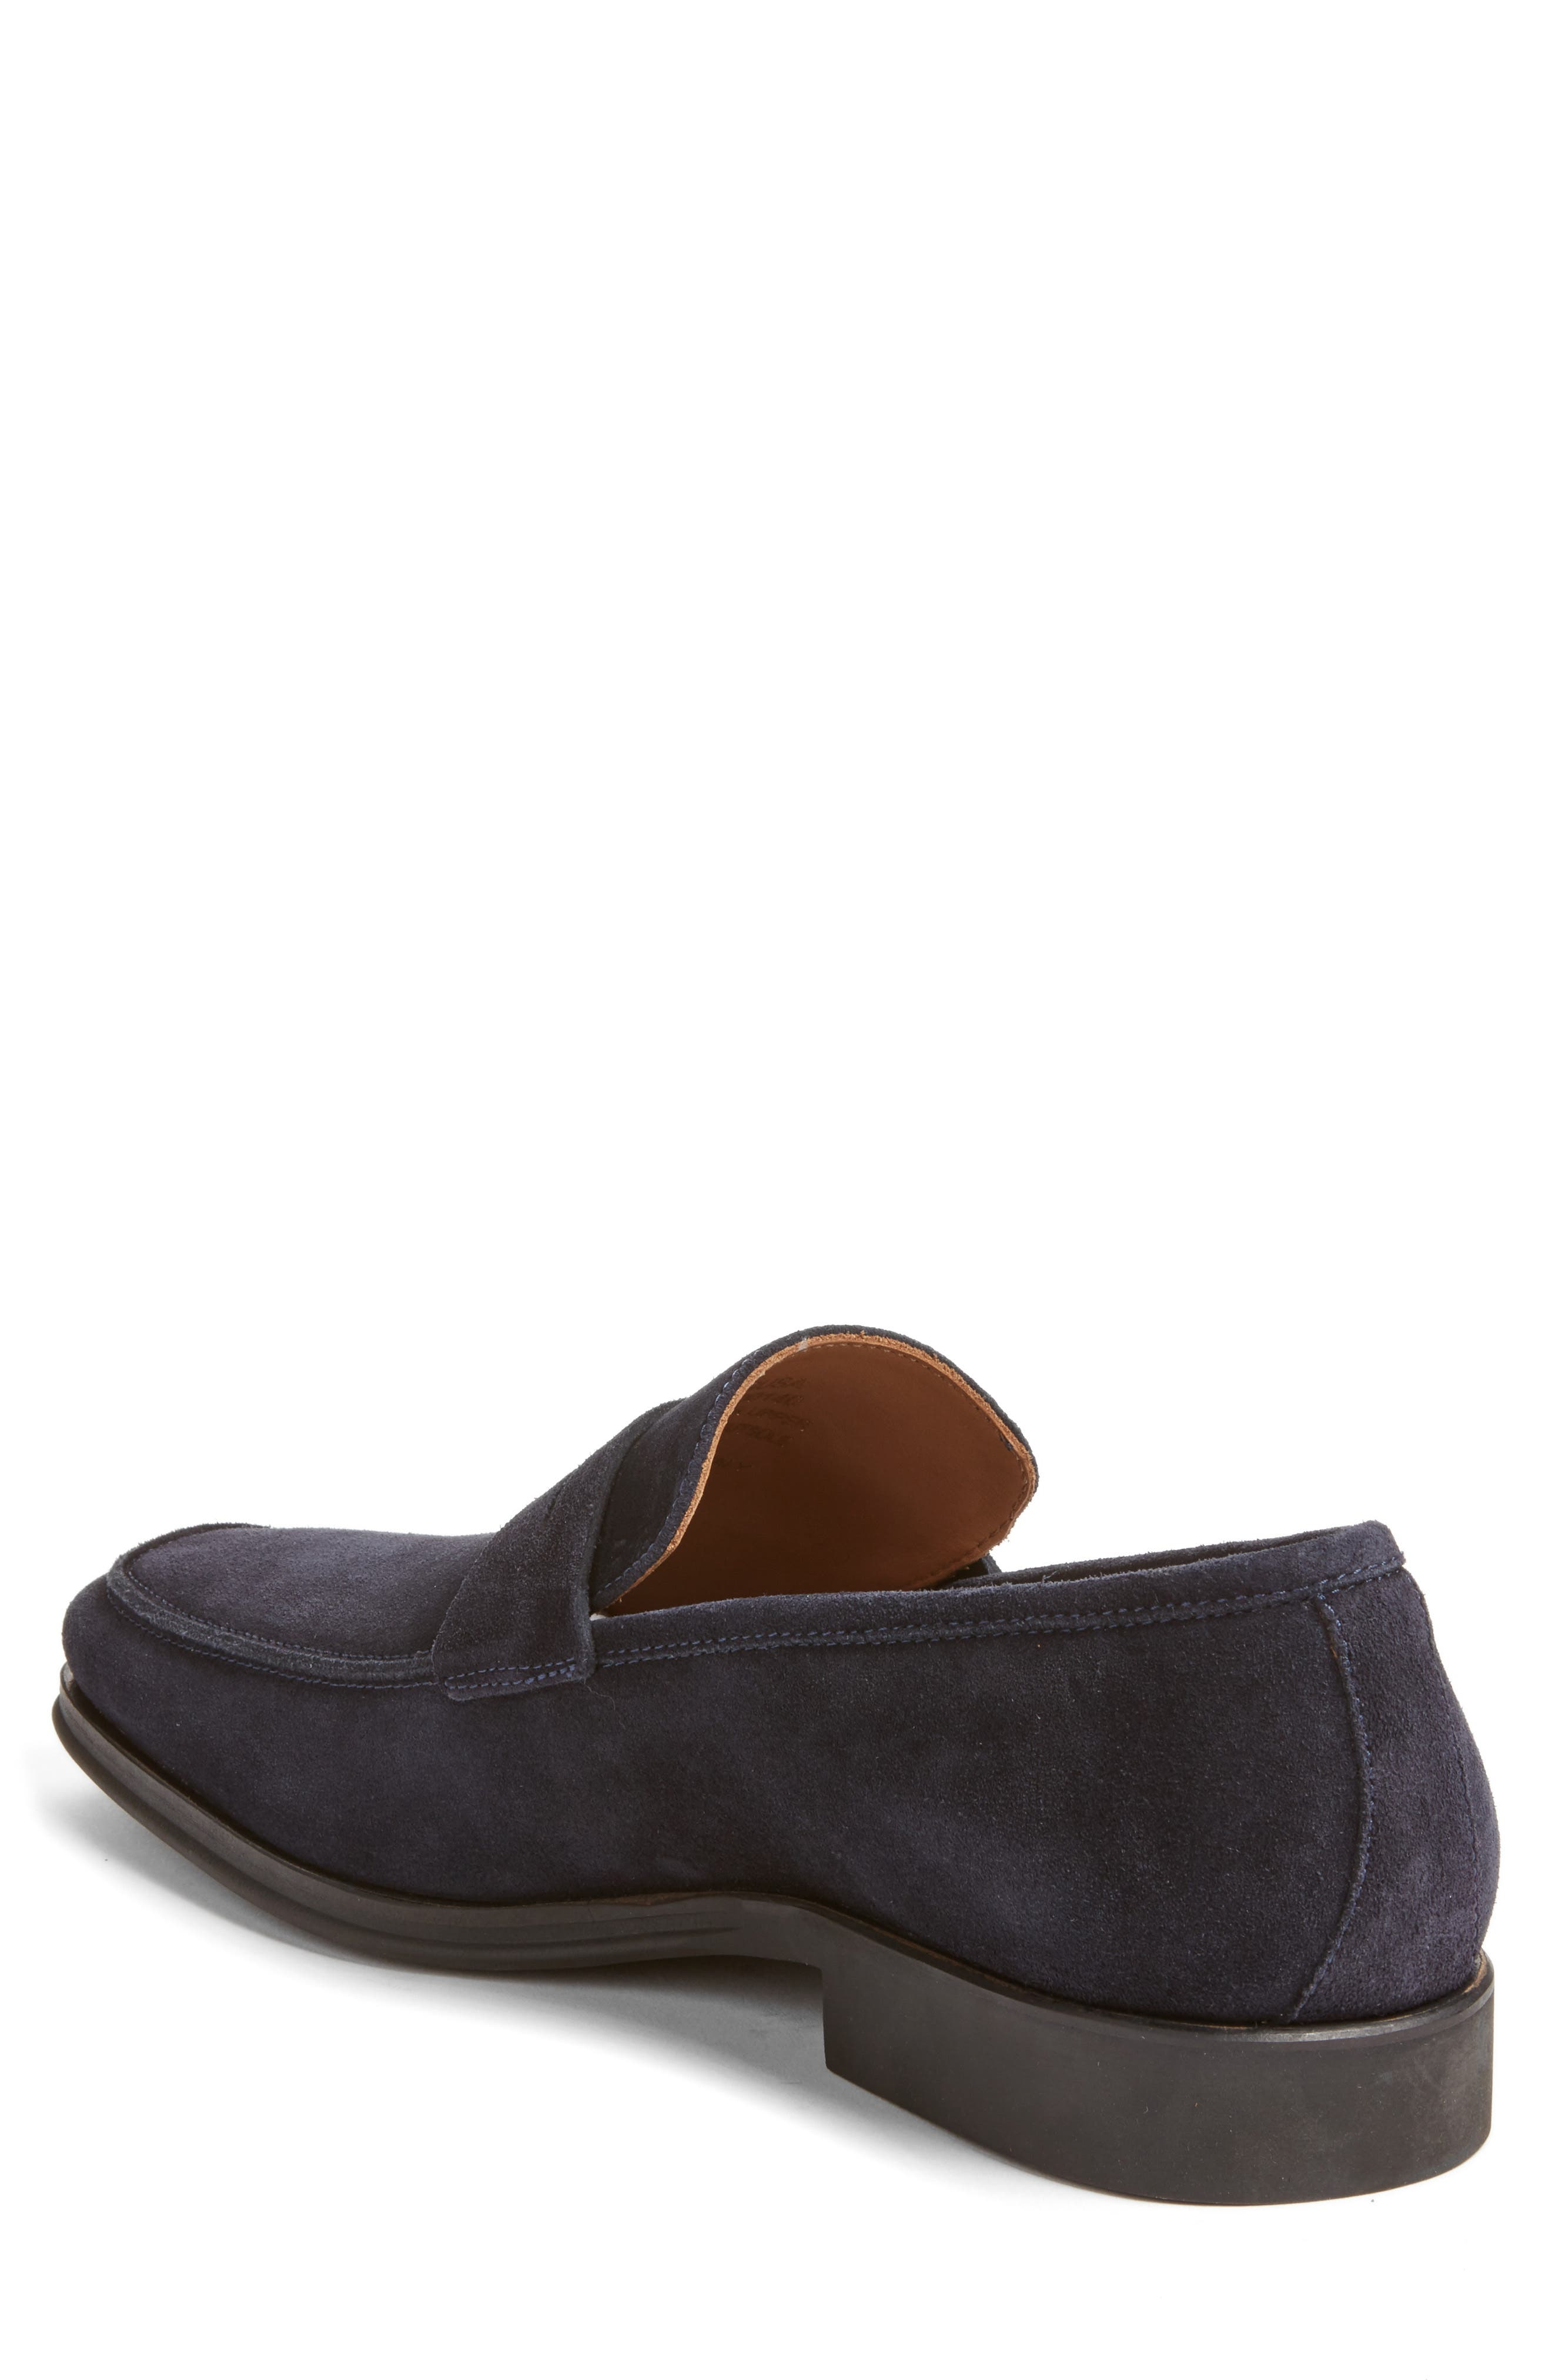 Ragusa Penny Loafer,                             Alternate thumbnail 6, color,